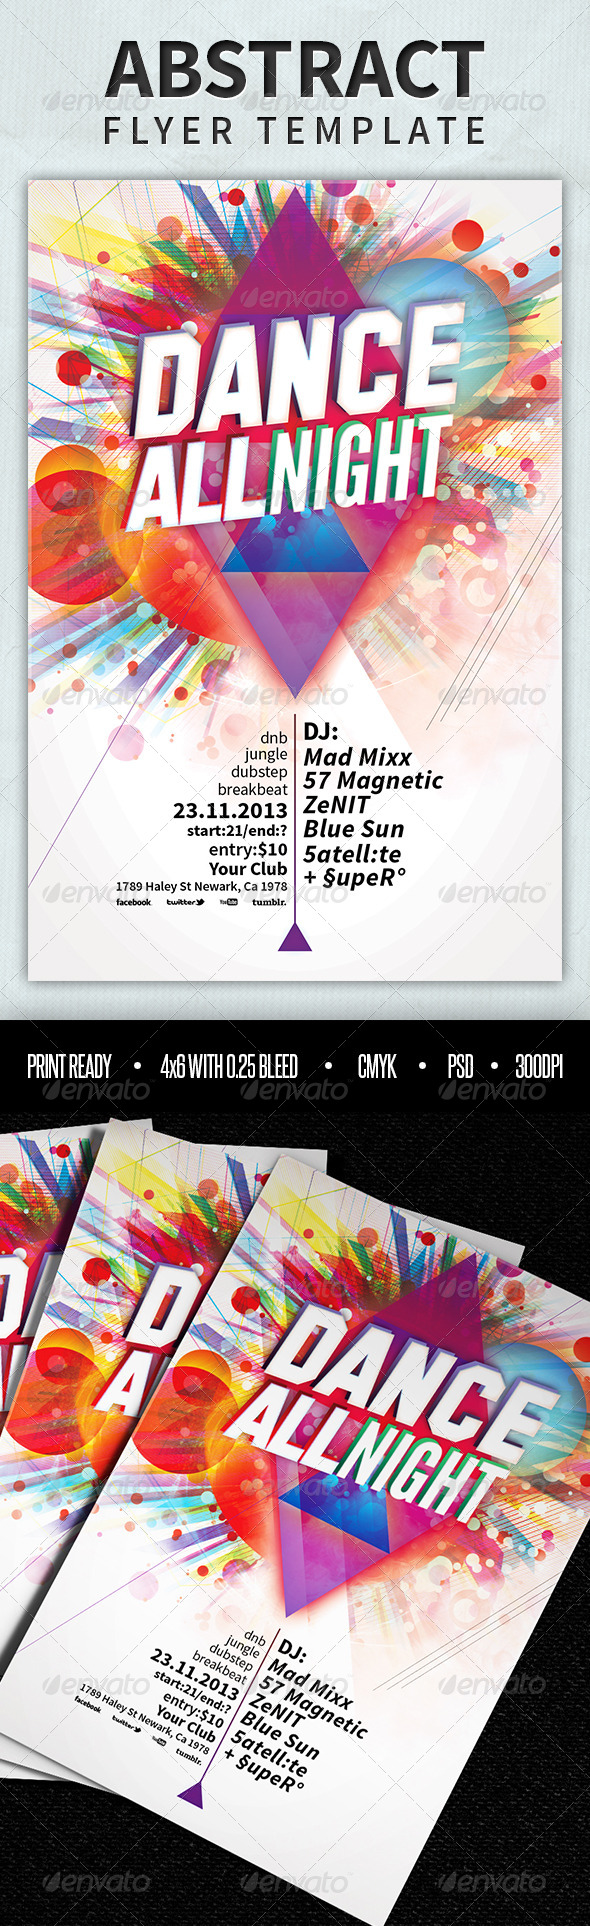 GraphicRiver Abstract Flyer Template 4024504